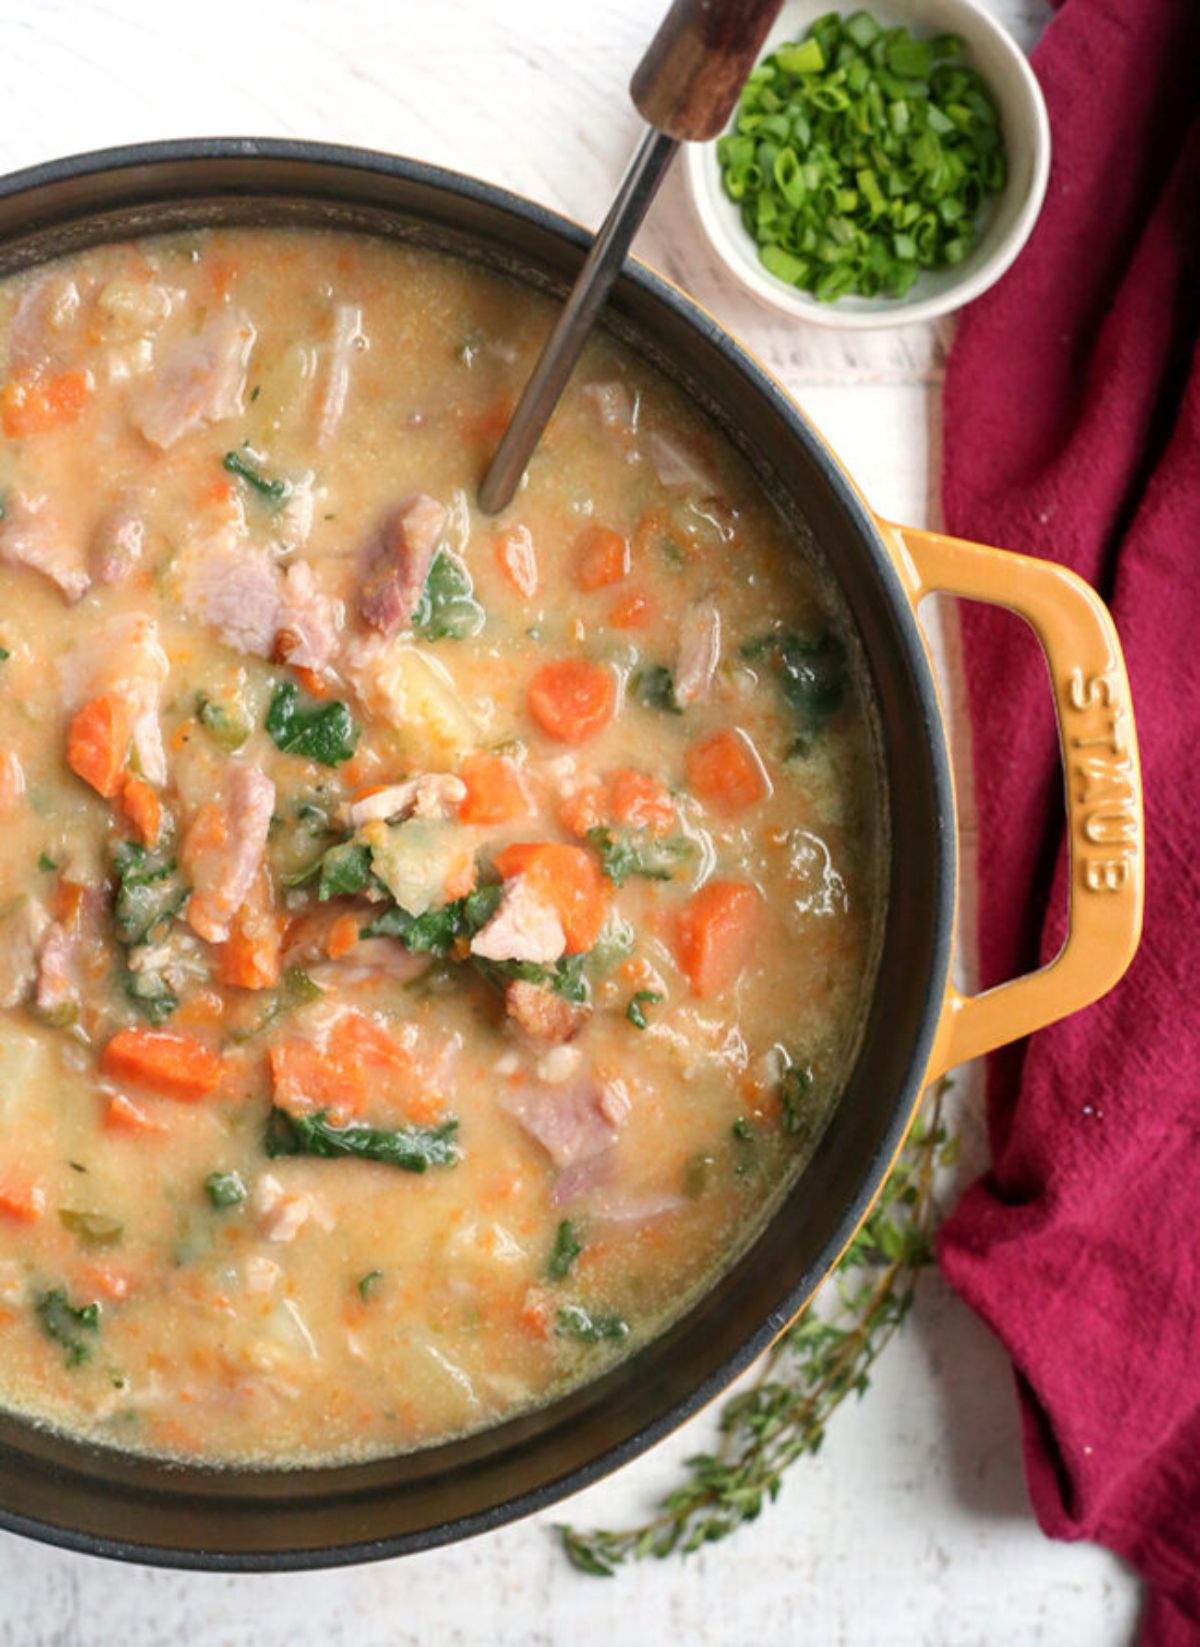 a cast iron casserole dish filled with ham and potato soup with chopped carrots and herbs seen. A spoon is resting in the dish, and a pot of chopped herbs is to the side